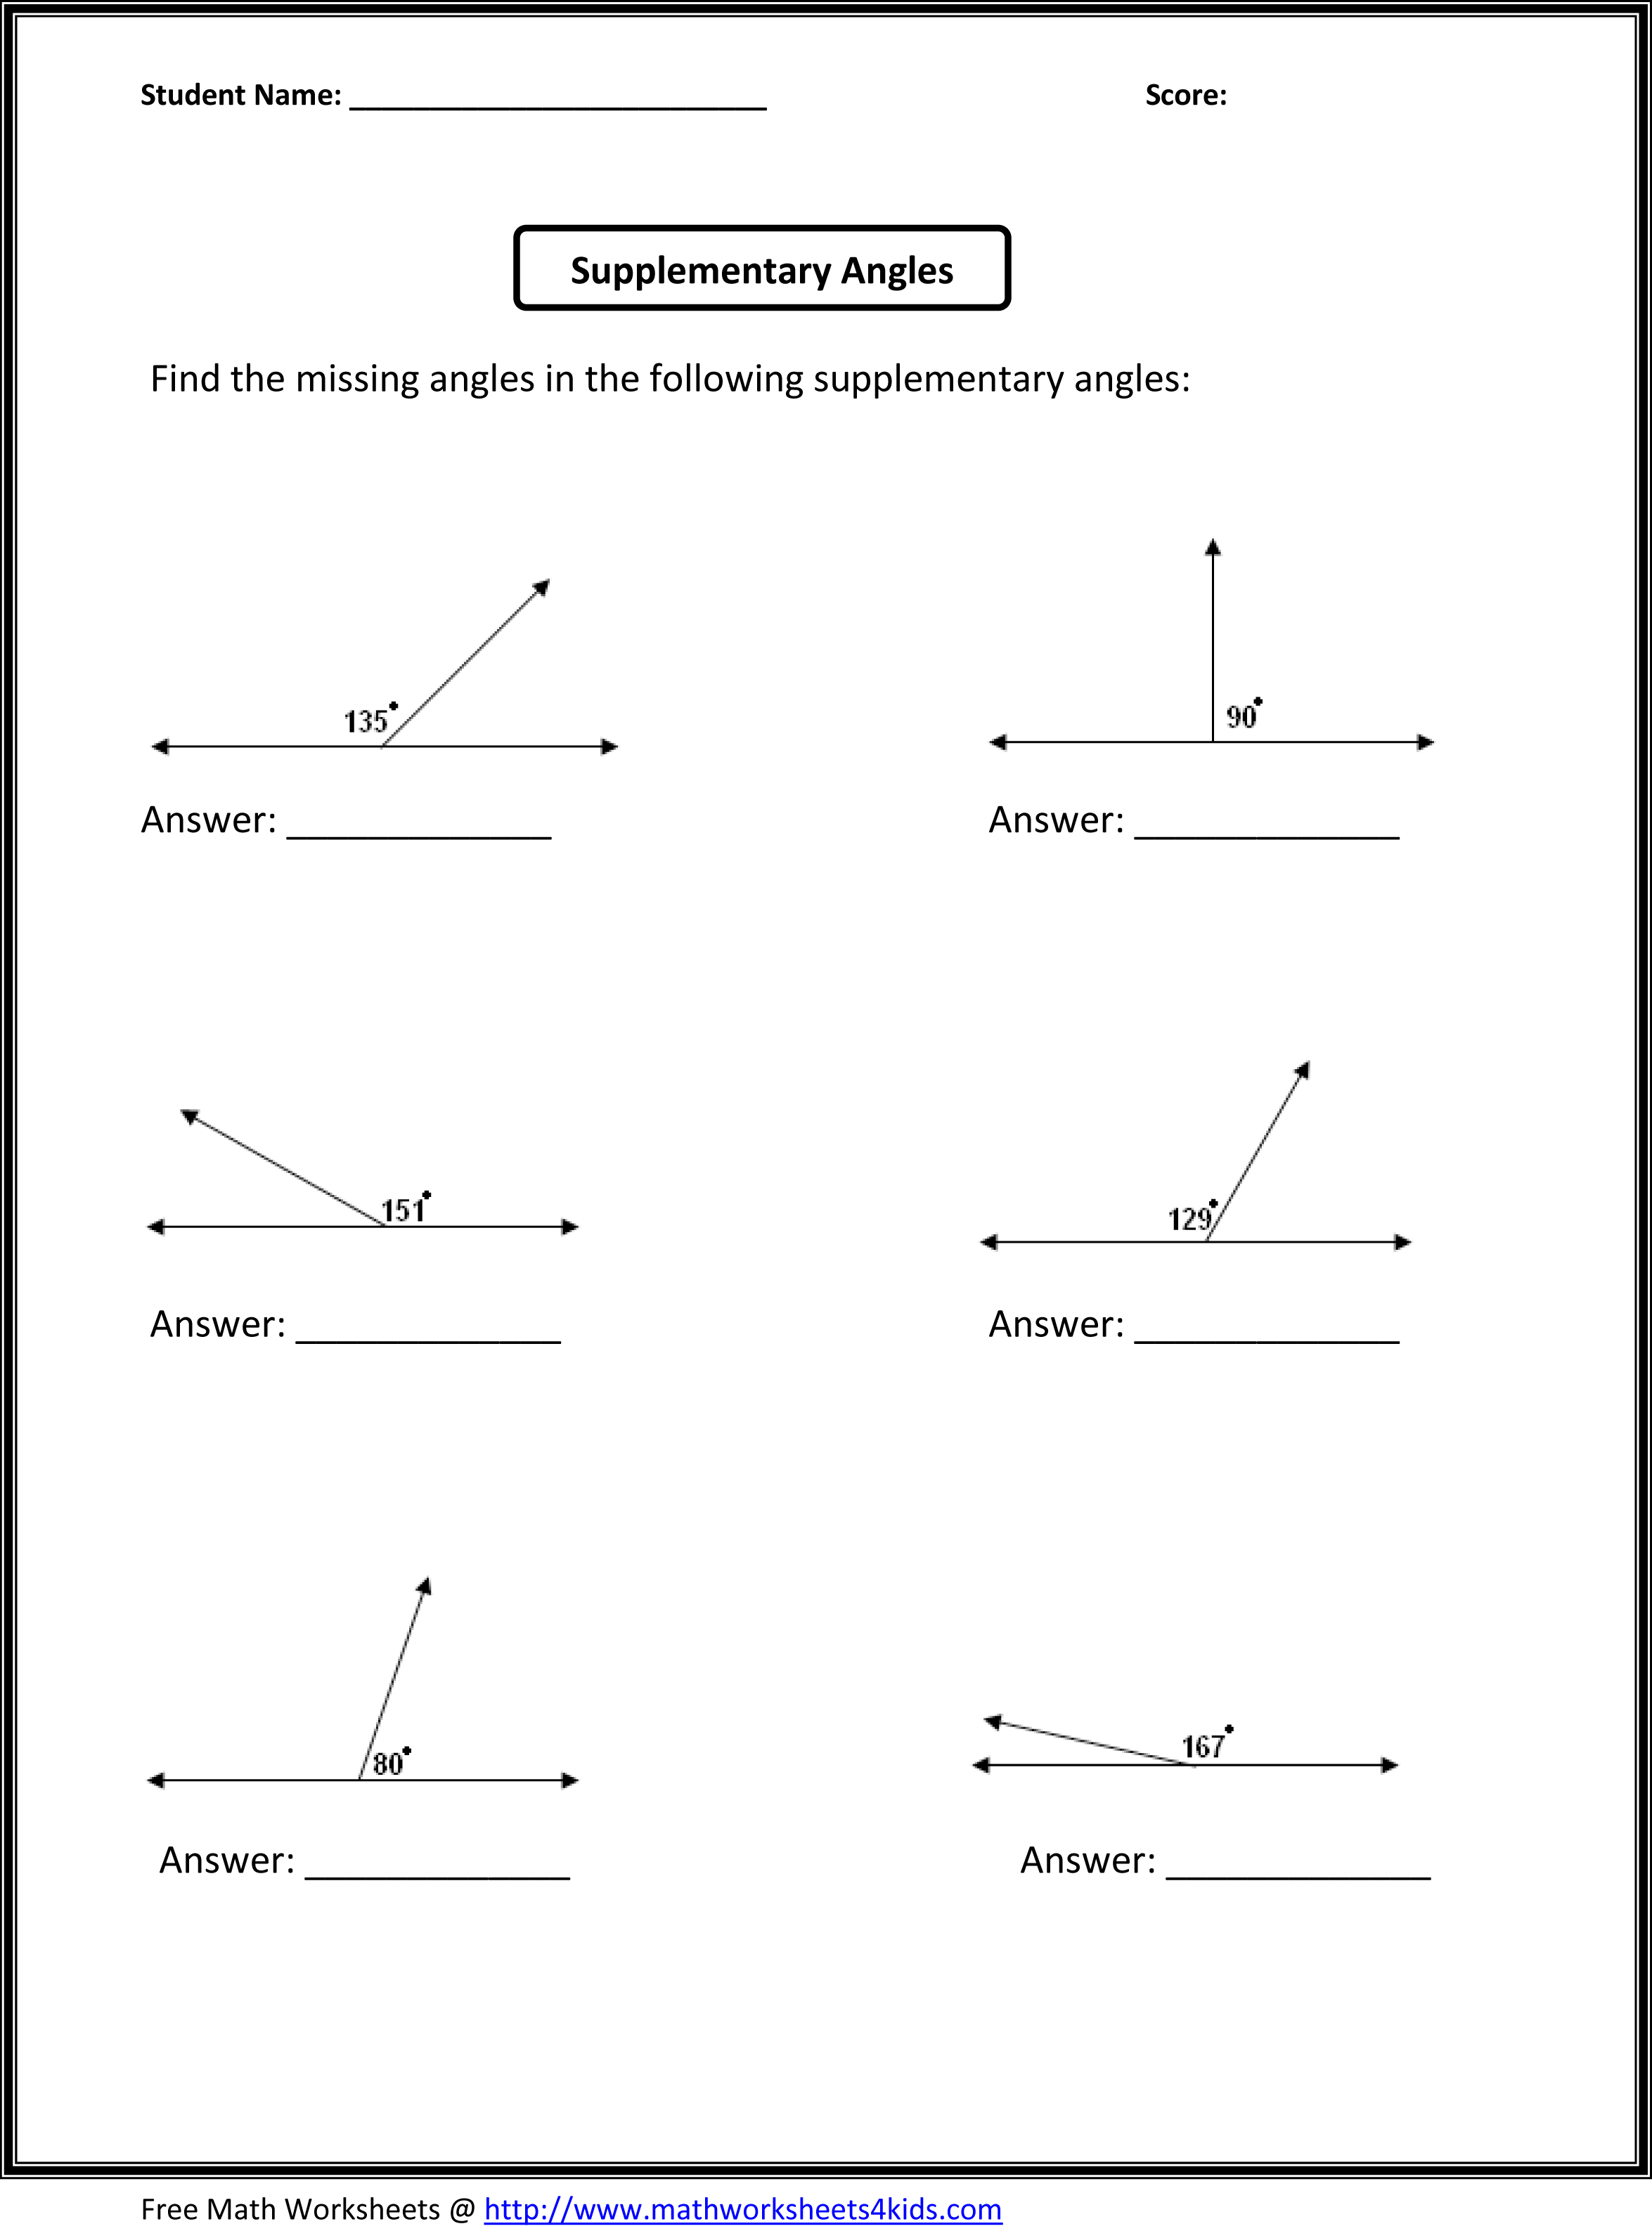 Printables 6th Grade Math Worksheets Printable Free 6th grade math worksheets online christmas for free printable third value absolute based on basic math